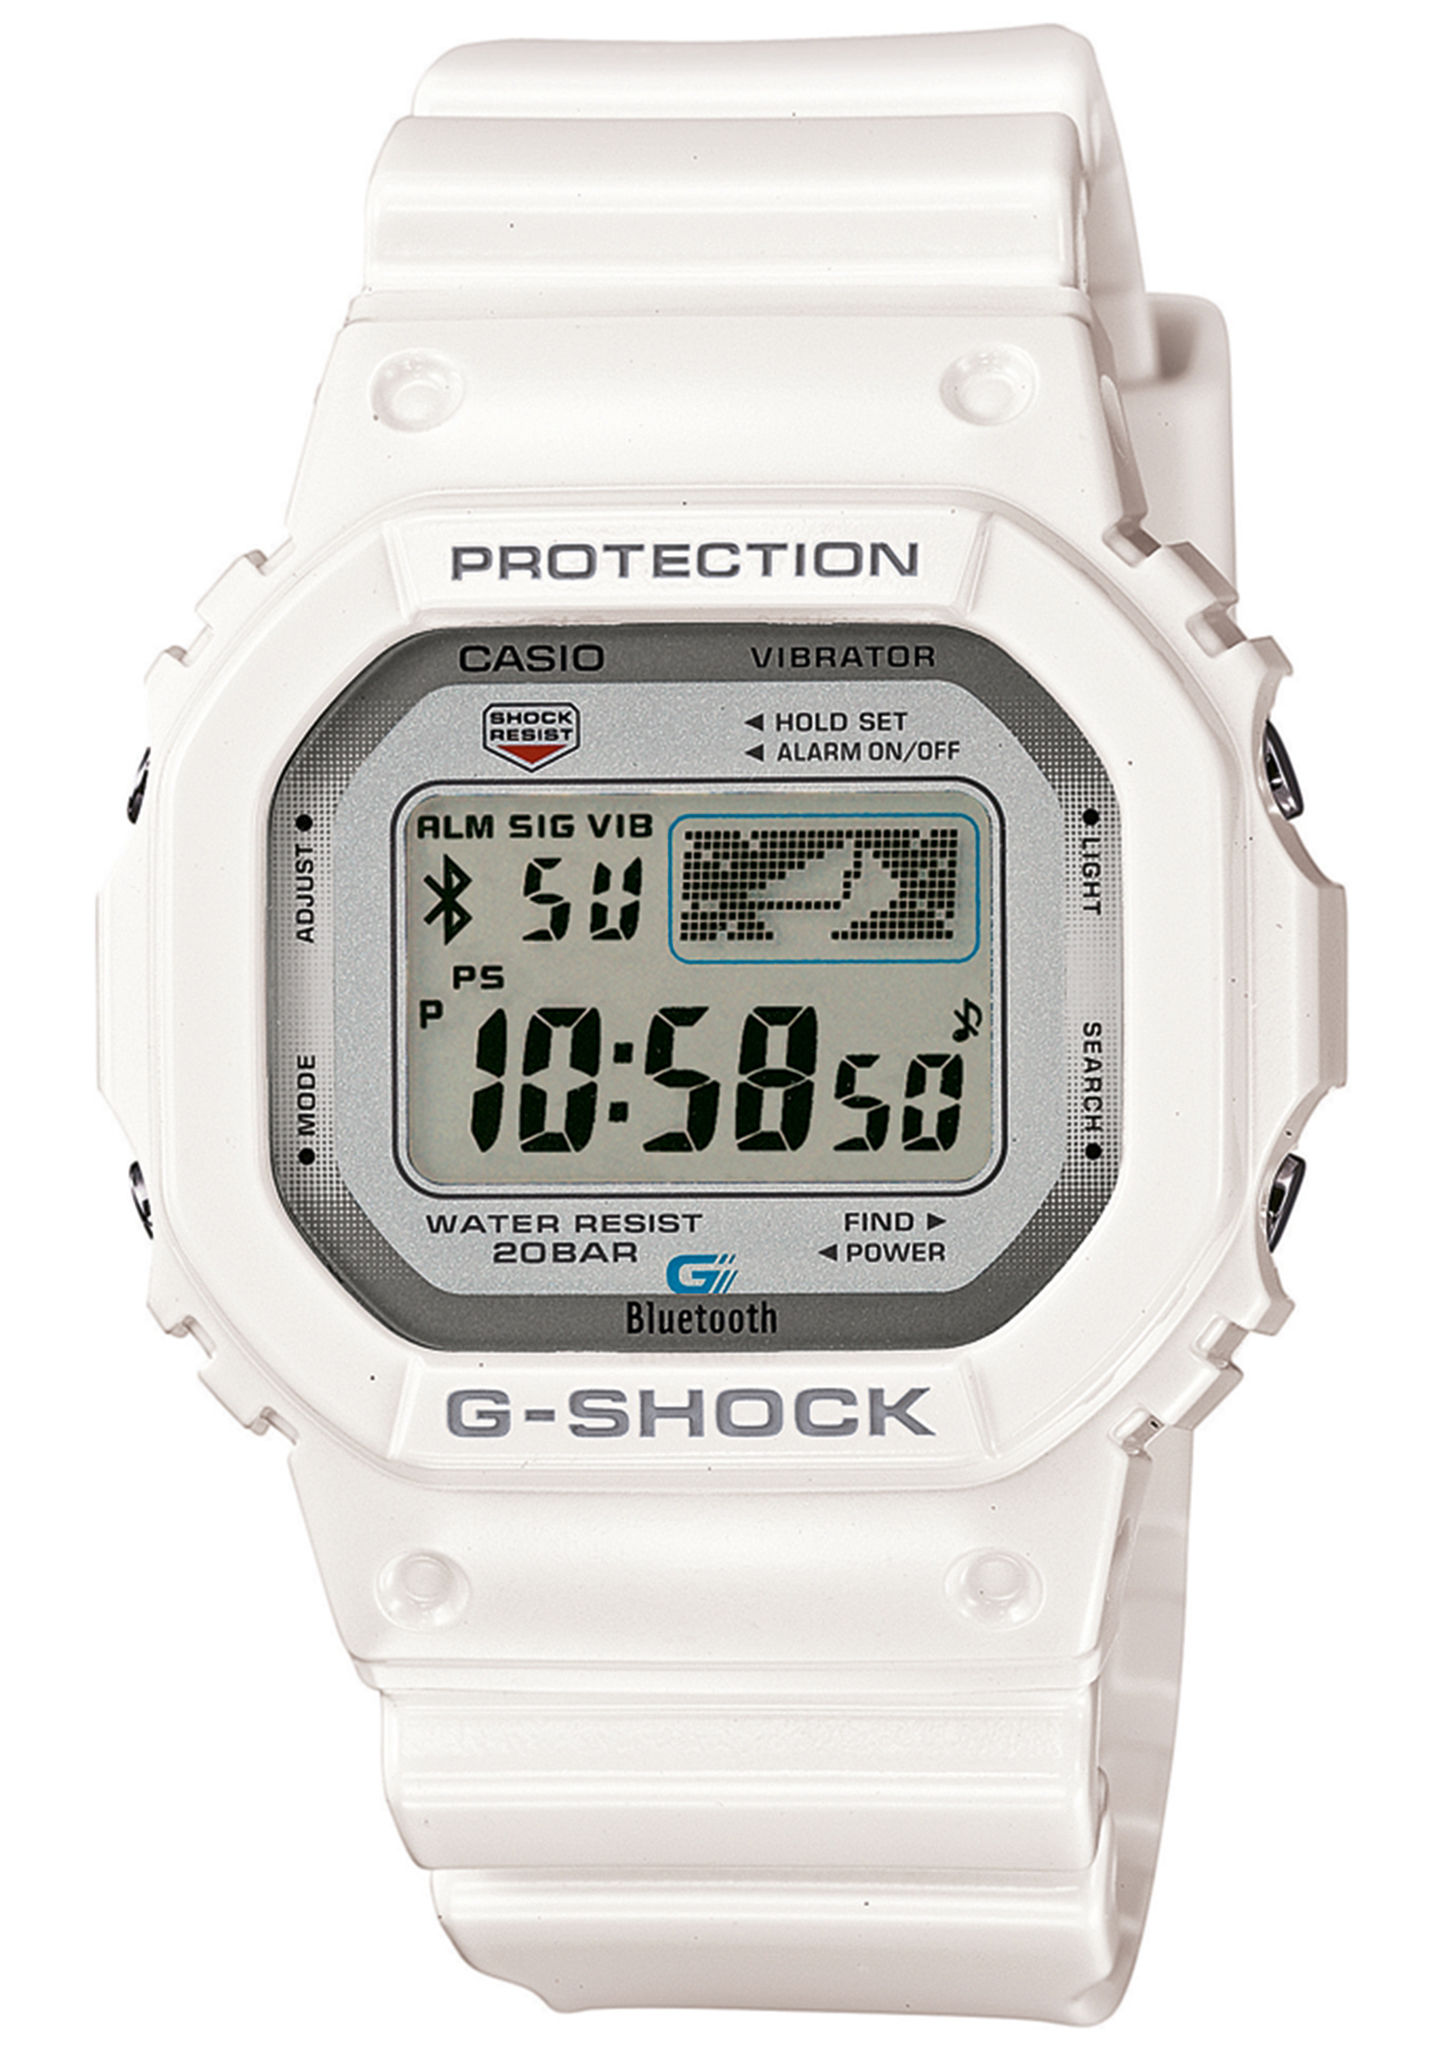 be124e2b098d8c G-SHOCK GB-5600AA-7ER - Orologi per Uomo - Bianco - Planet Sports